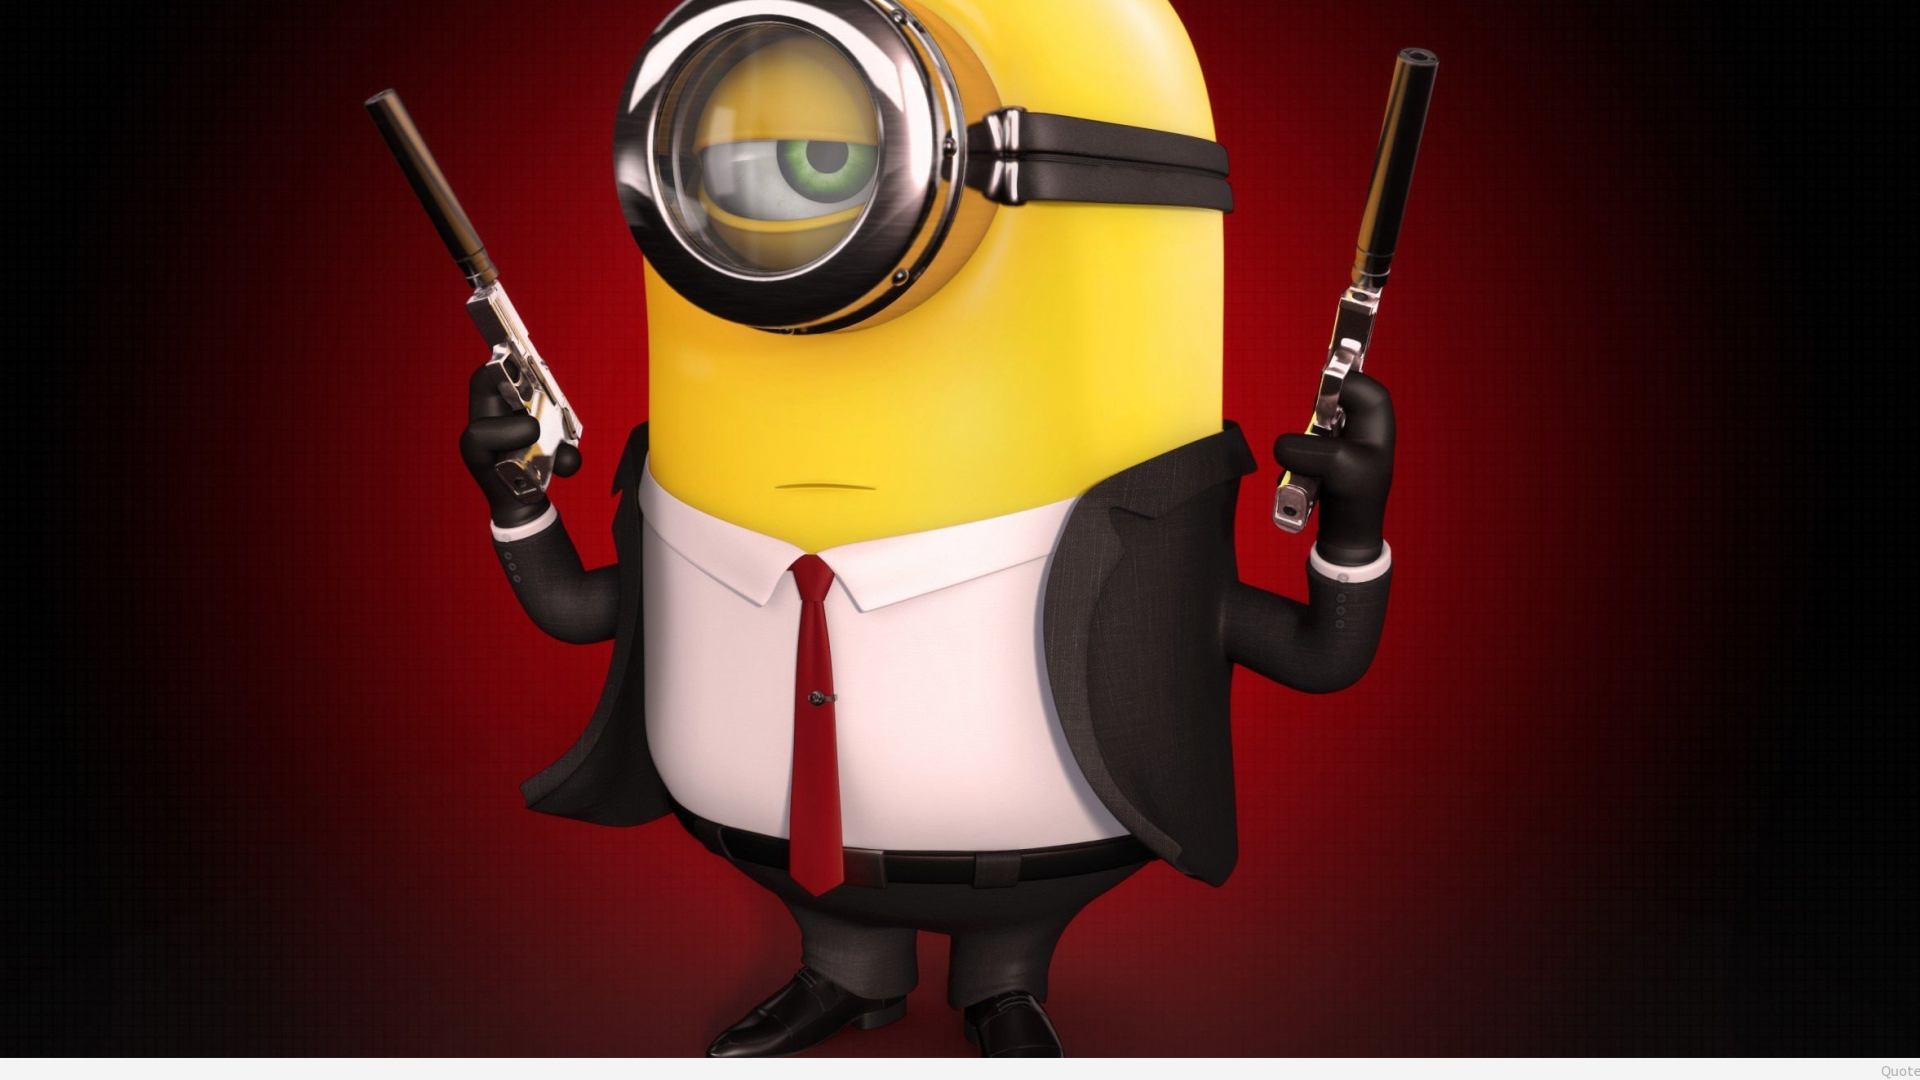 Free Download Hitman Minion Wallpaper Funny Movie Photo Minion Wallpaperjpg 2560x1323 For Your Desktop Mobile Tablet Explore 48 Hitman 2016 Wallpaper Hitman Absolution Wallpaper Hitman Wallpaper For Computer Hitman Wallpaper Full Hd